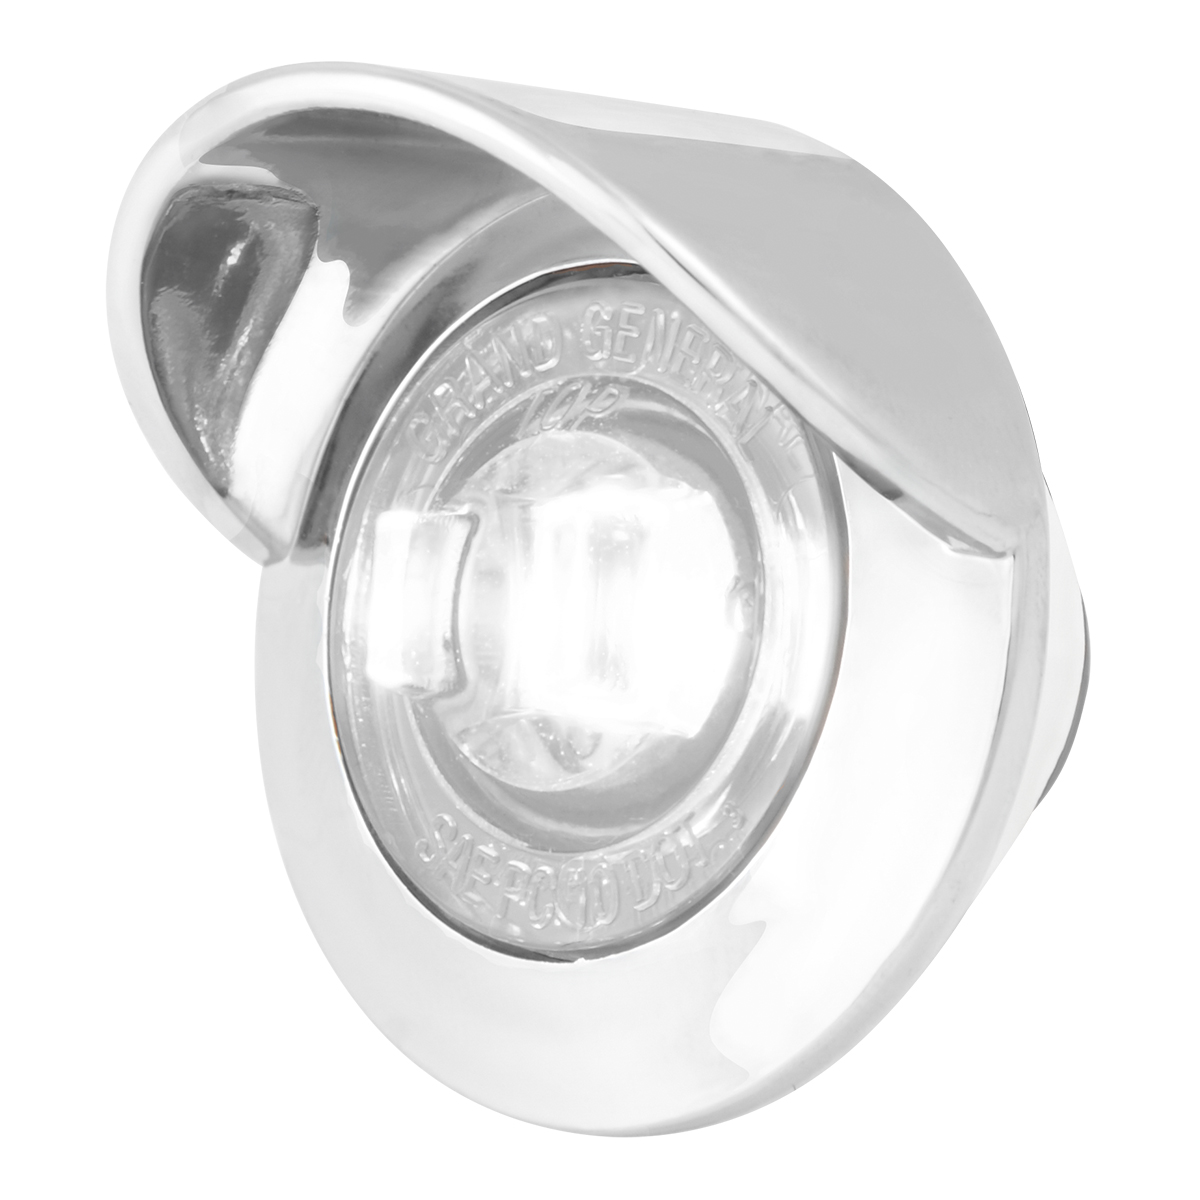 "75264 1"" Dual Function Mini Push/Screw-in Wide Angle LED Light w/ Chrome Bezel & Visor"